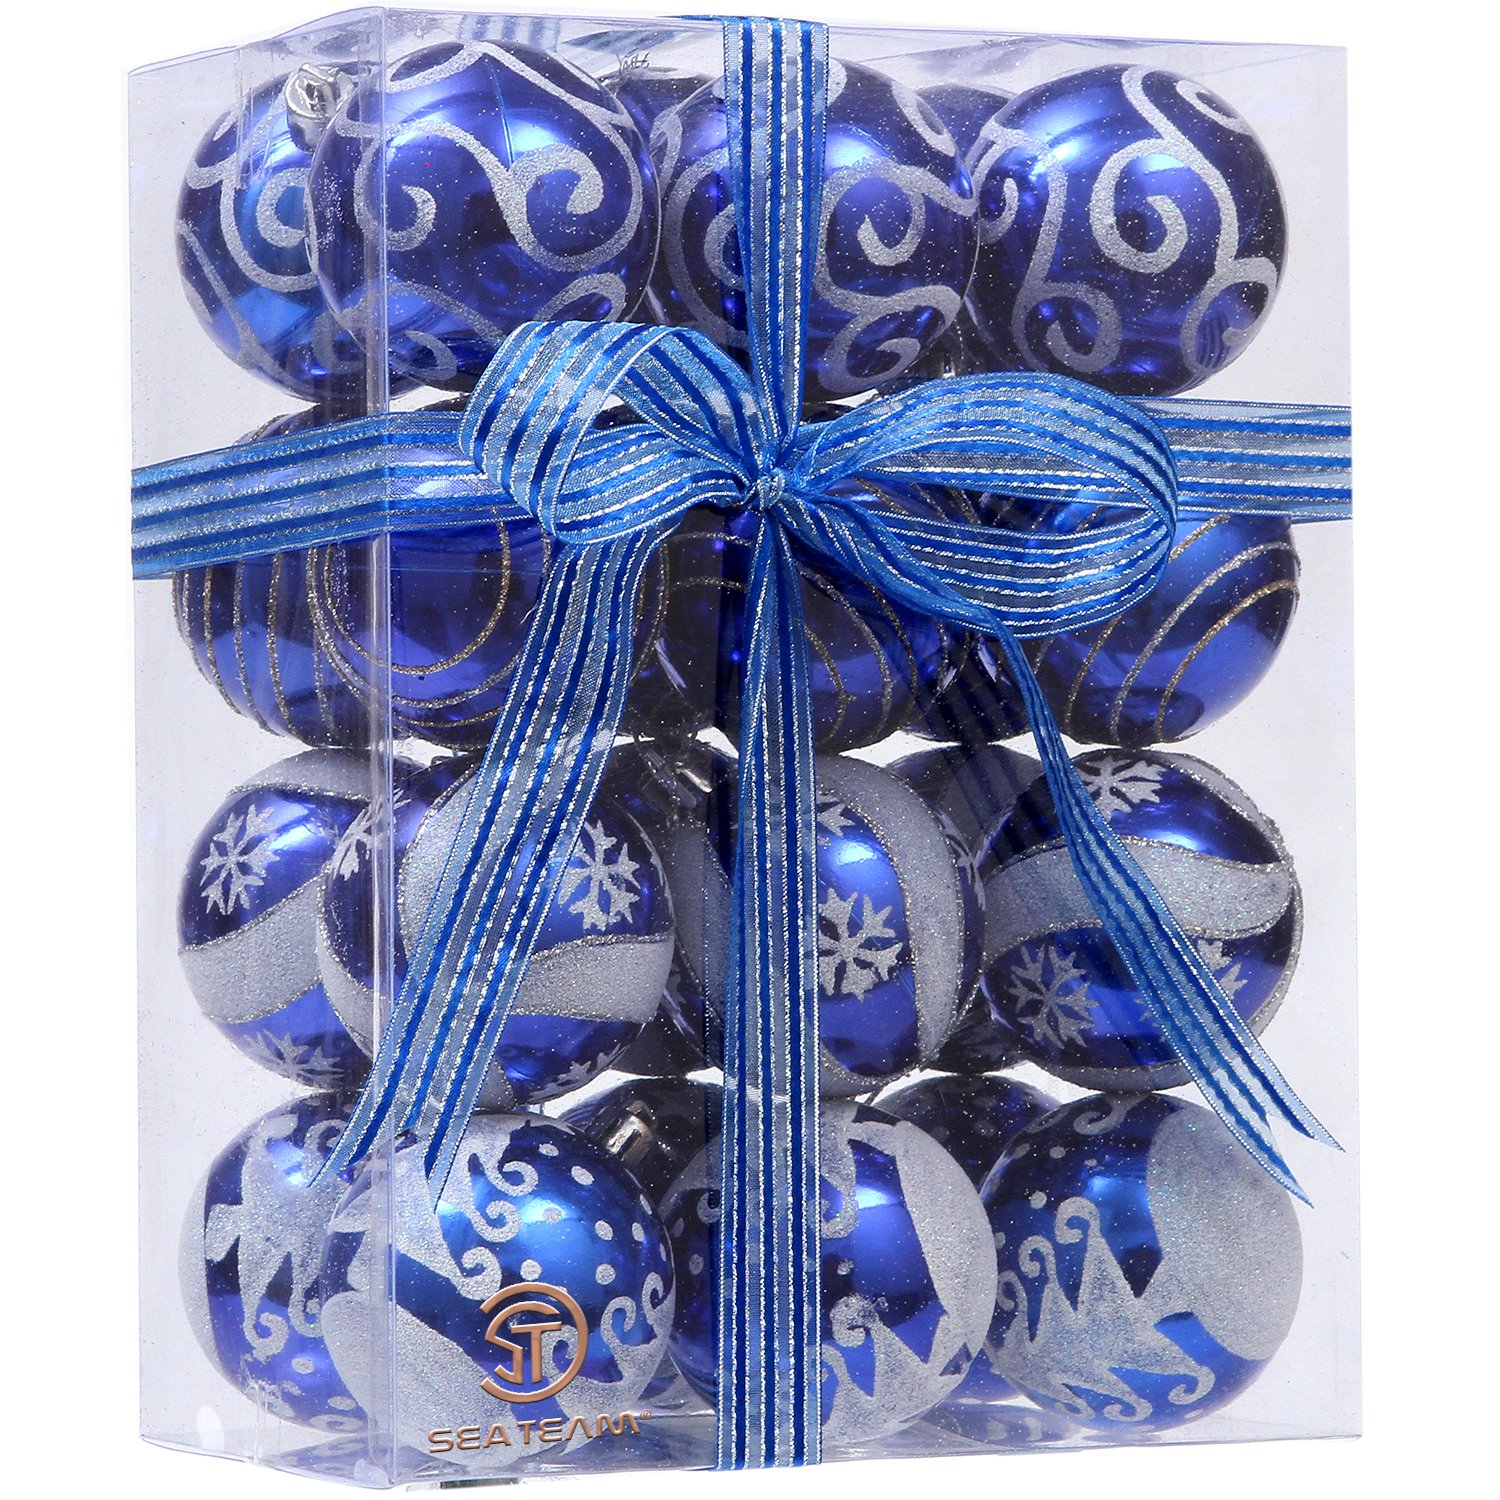 Delicate Painting & Glittering Shatterproof Christmas Ball Ornaments Decorative Hanging Christmas Ornaments Baubles Set for Xmas Tree Blues